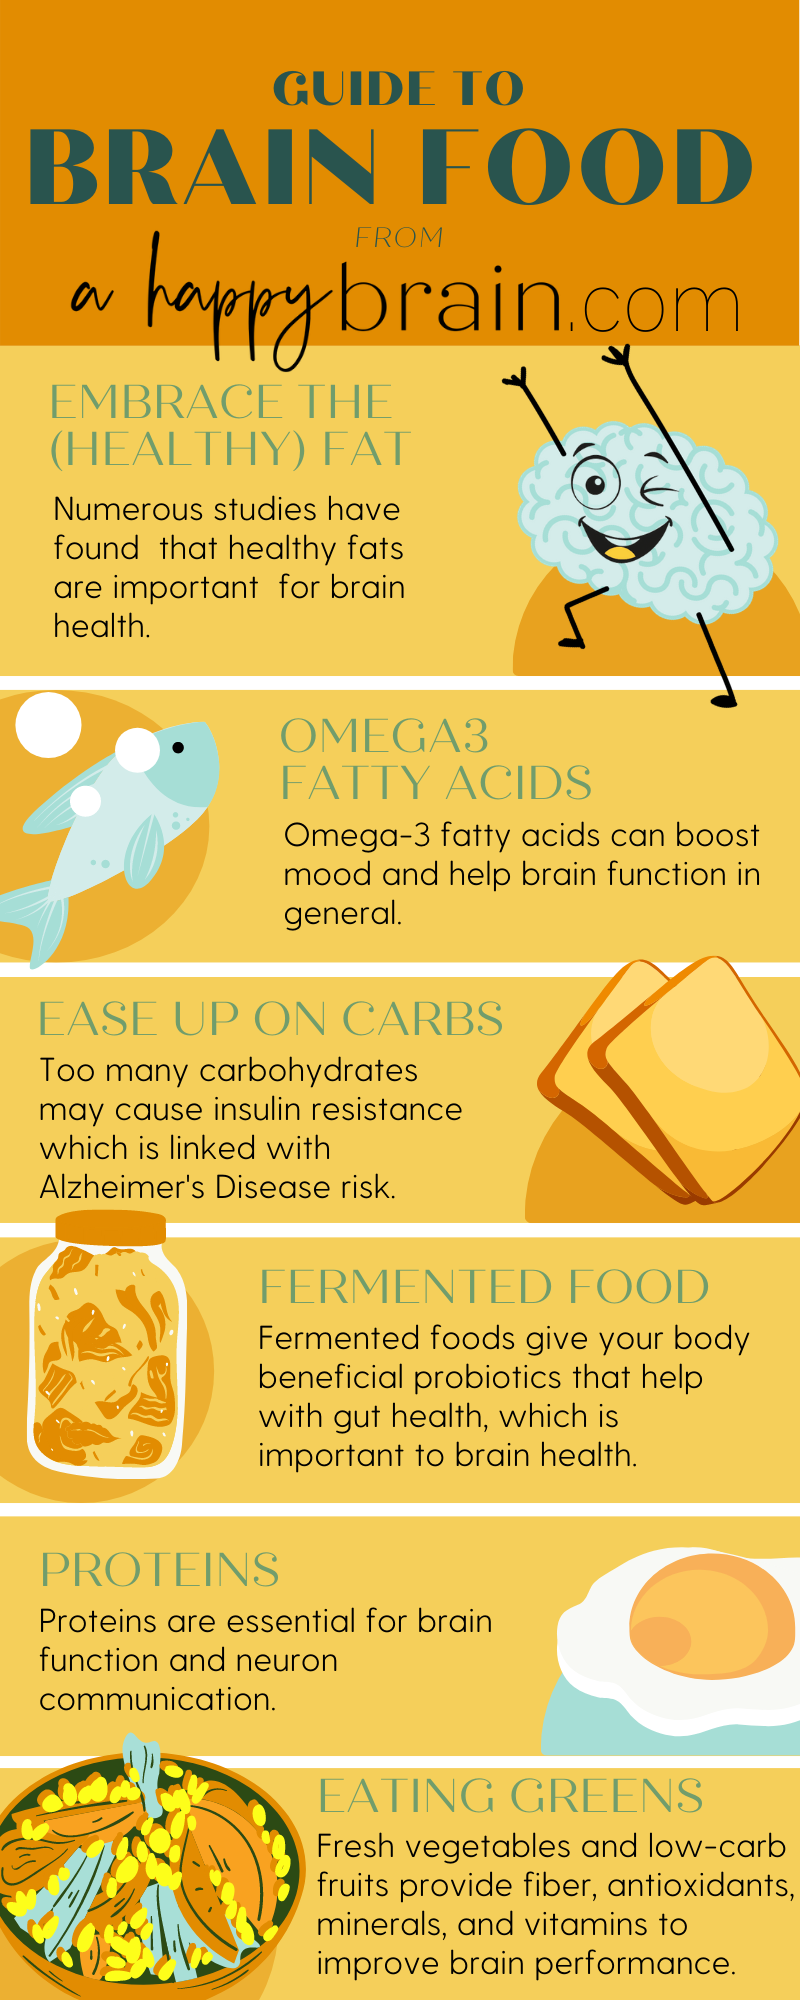 Food for Thought-Guide to Brain Food